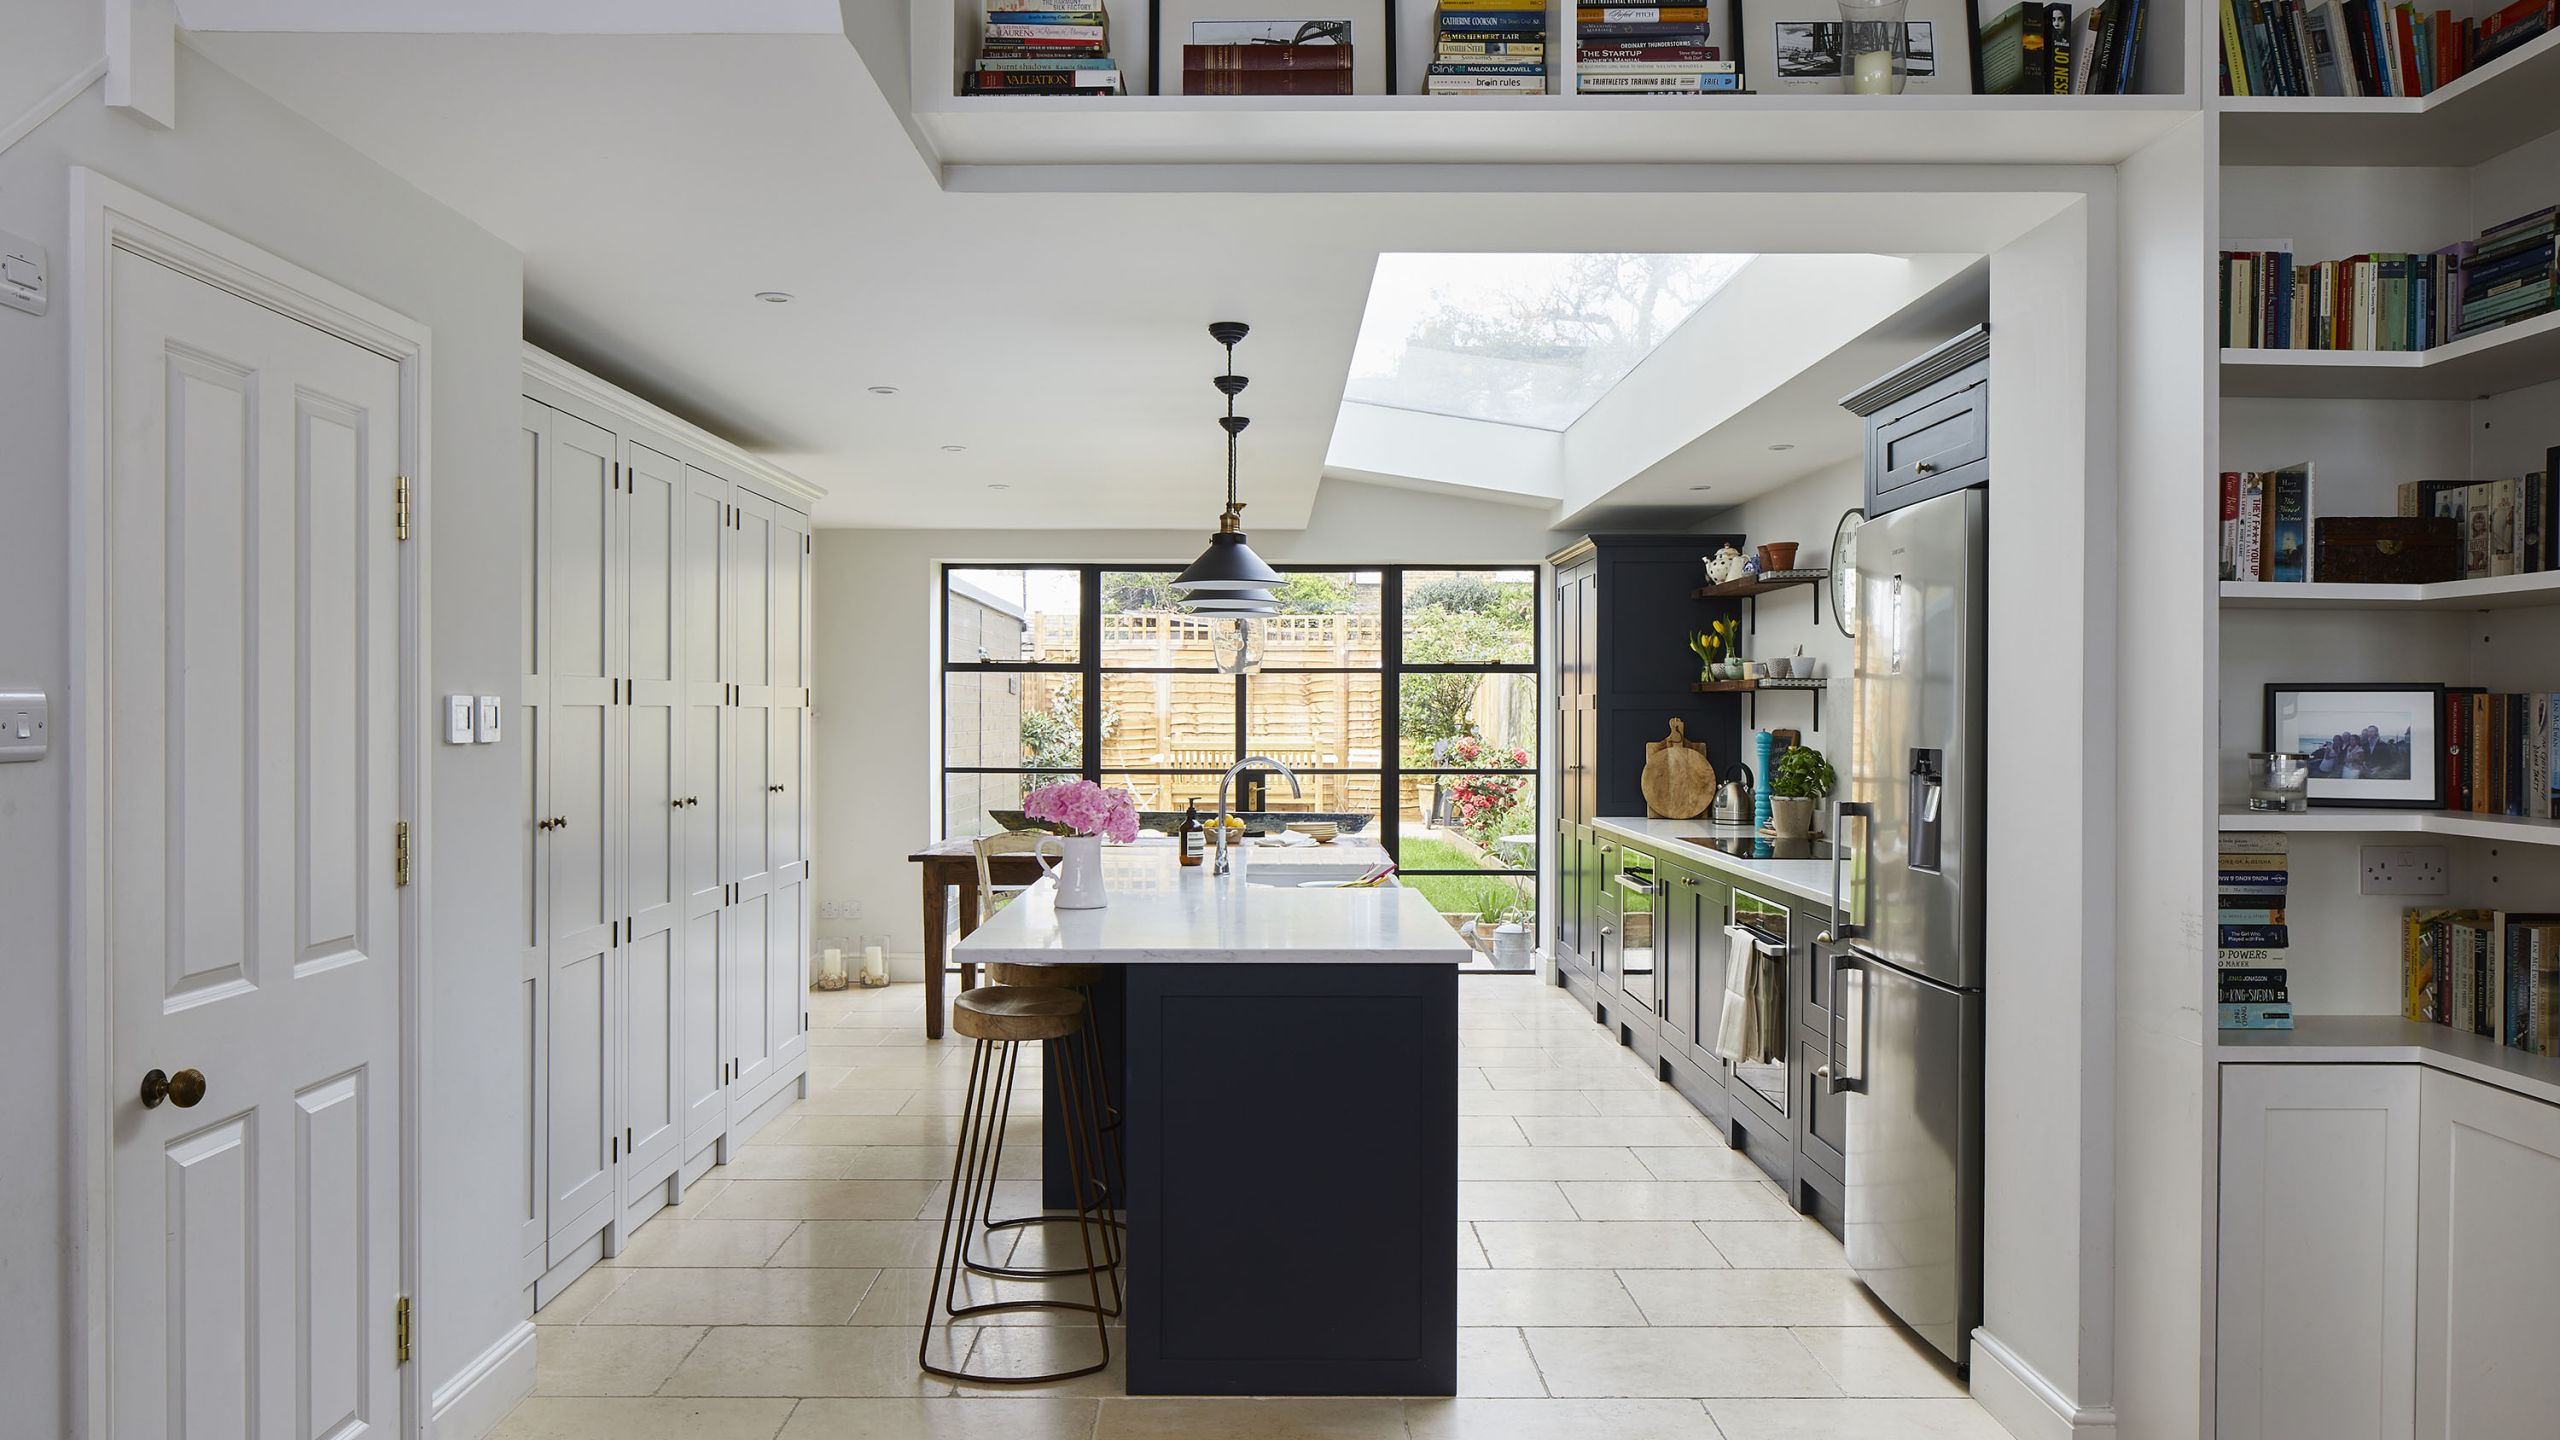 Real kitchen: a remodel makes way for an open-plan kitchen diner